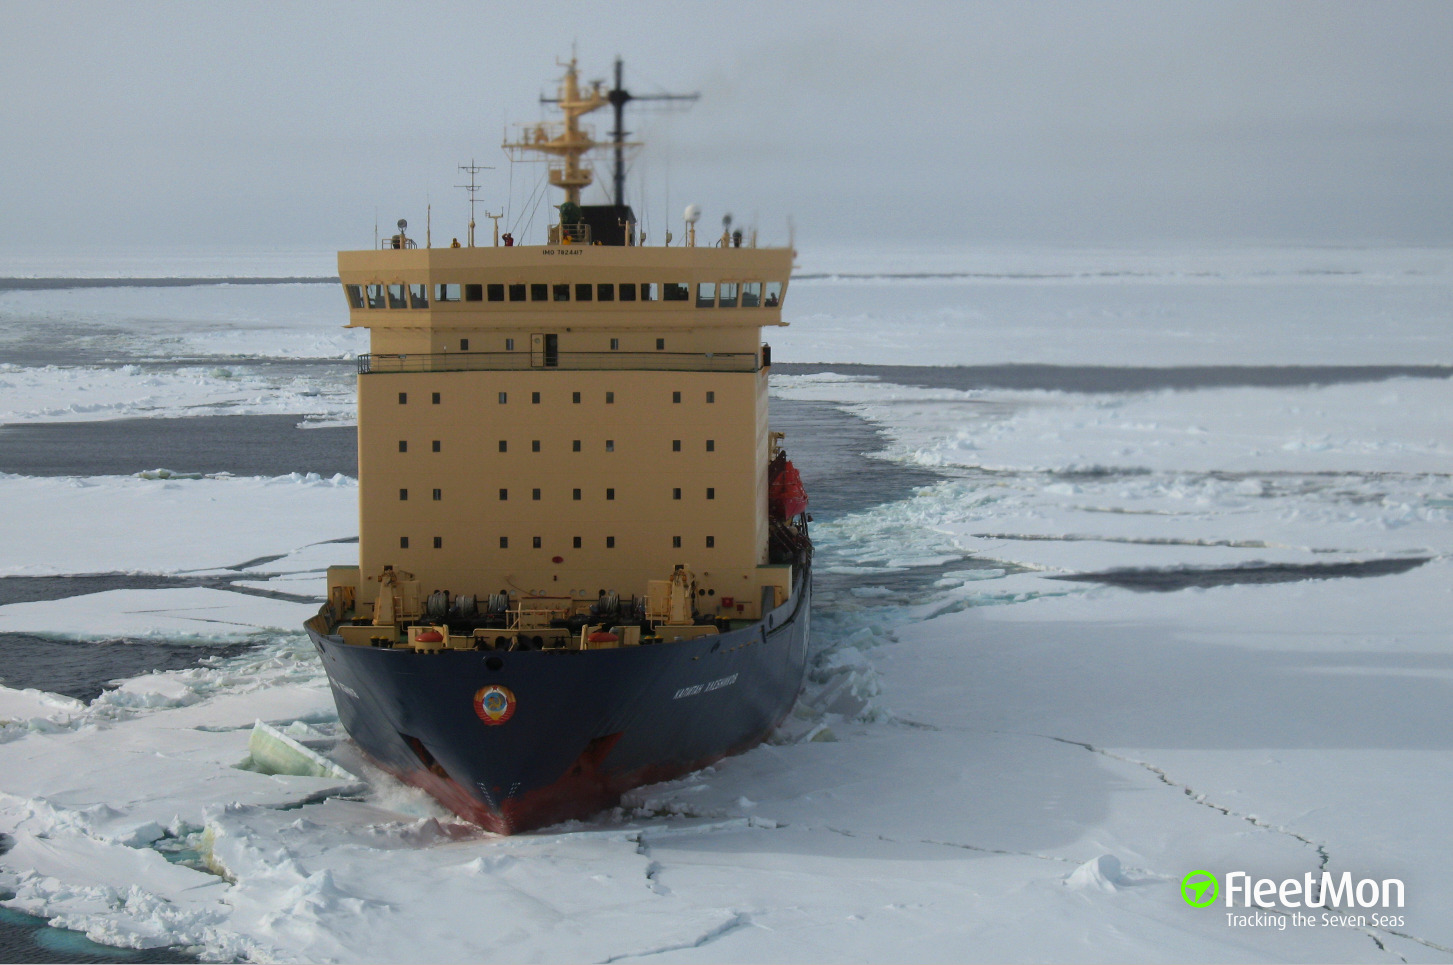 Passenger ship with 127 passengers freed from ice, reached port of destination